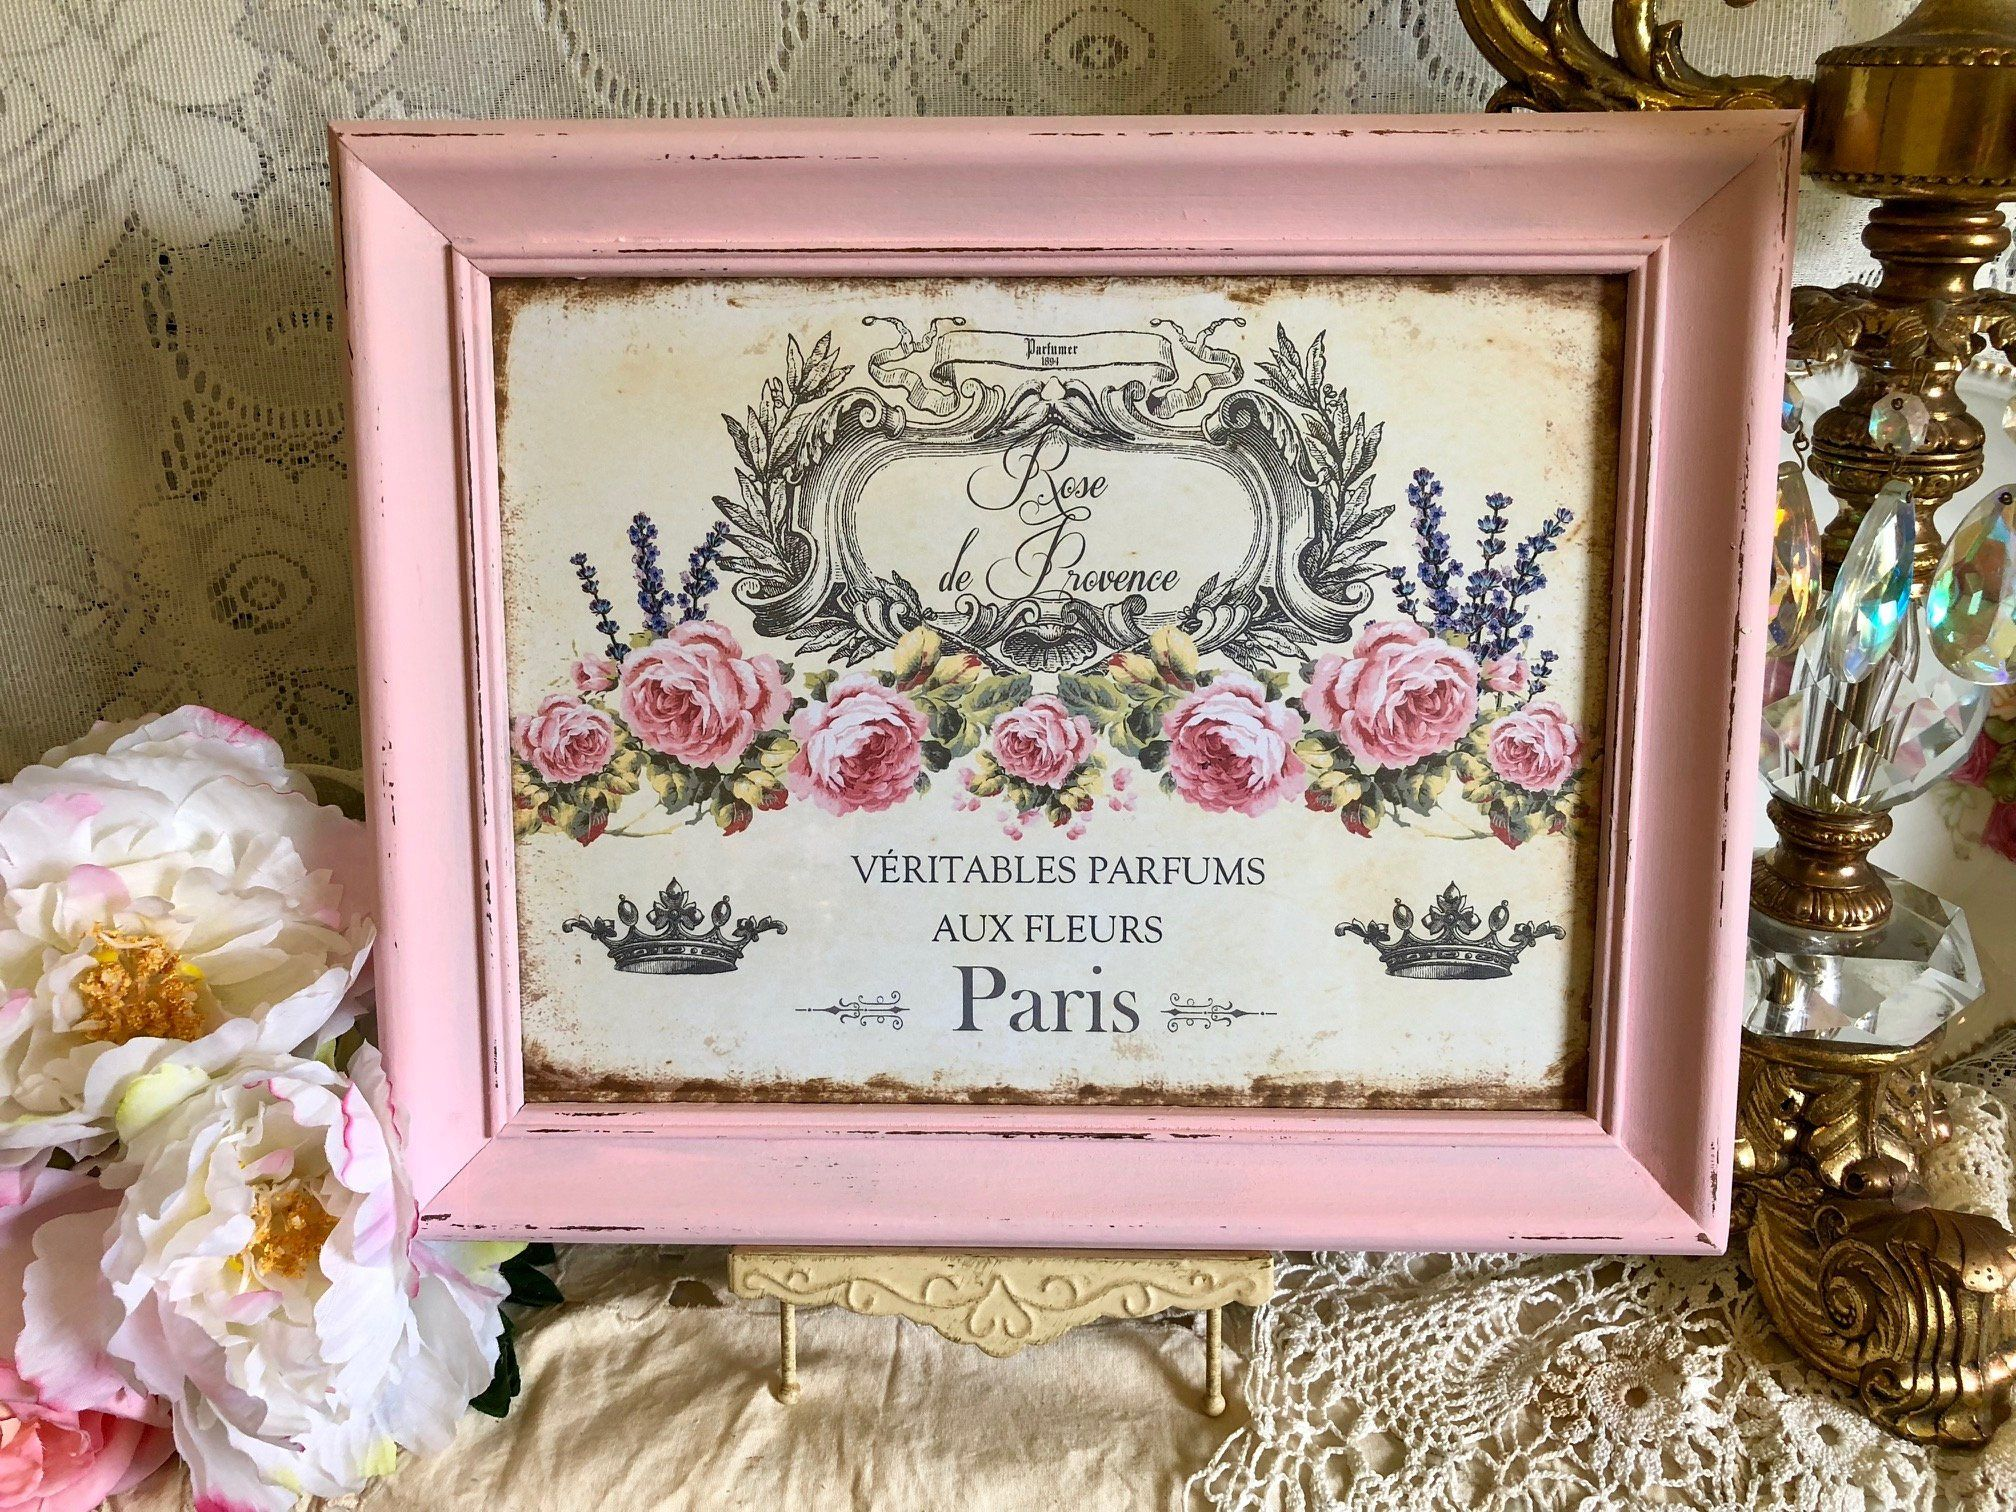 Shabby Chic Country Romantic Frame.Shabby Chic Framed Print Rose De Provence Paris French